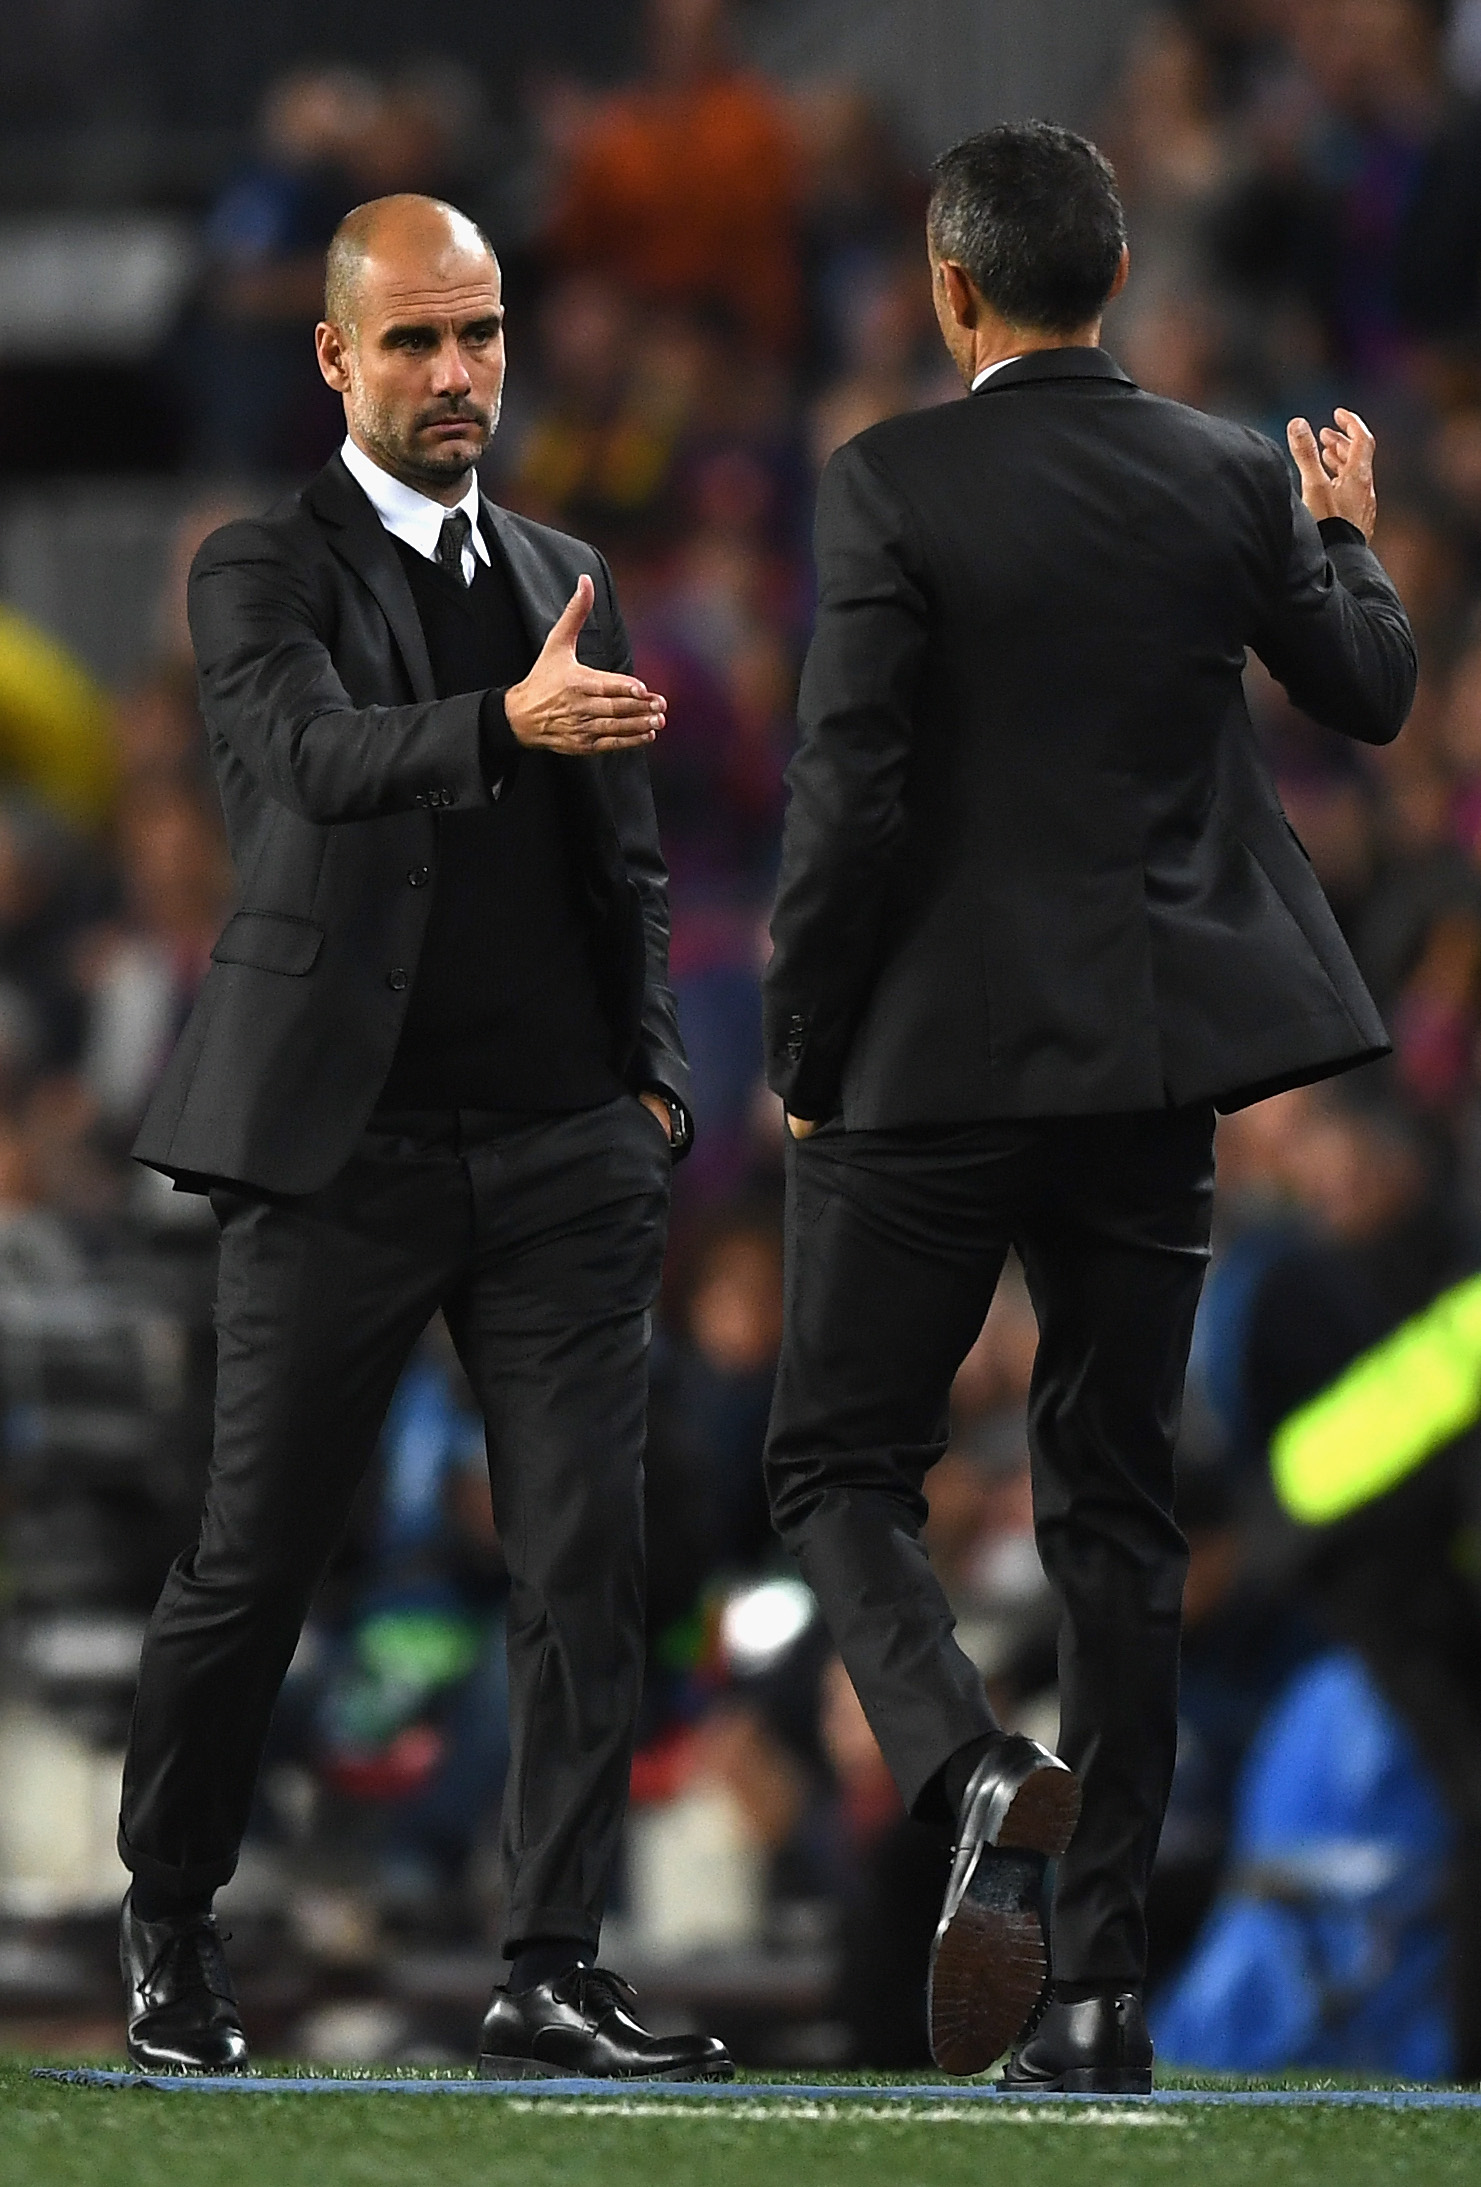 Gracious in defeat, but Guardiola doesn't intend to taste too many losses as he strives to make City the top club in English and European football.